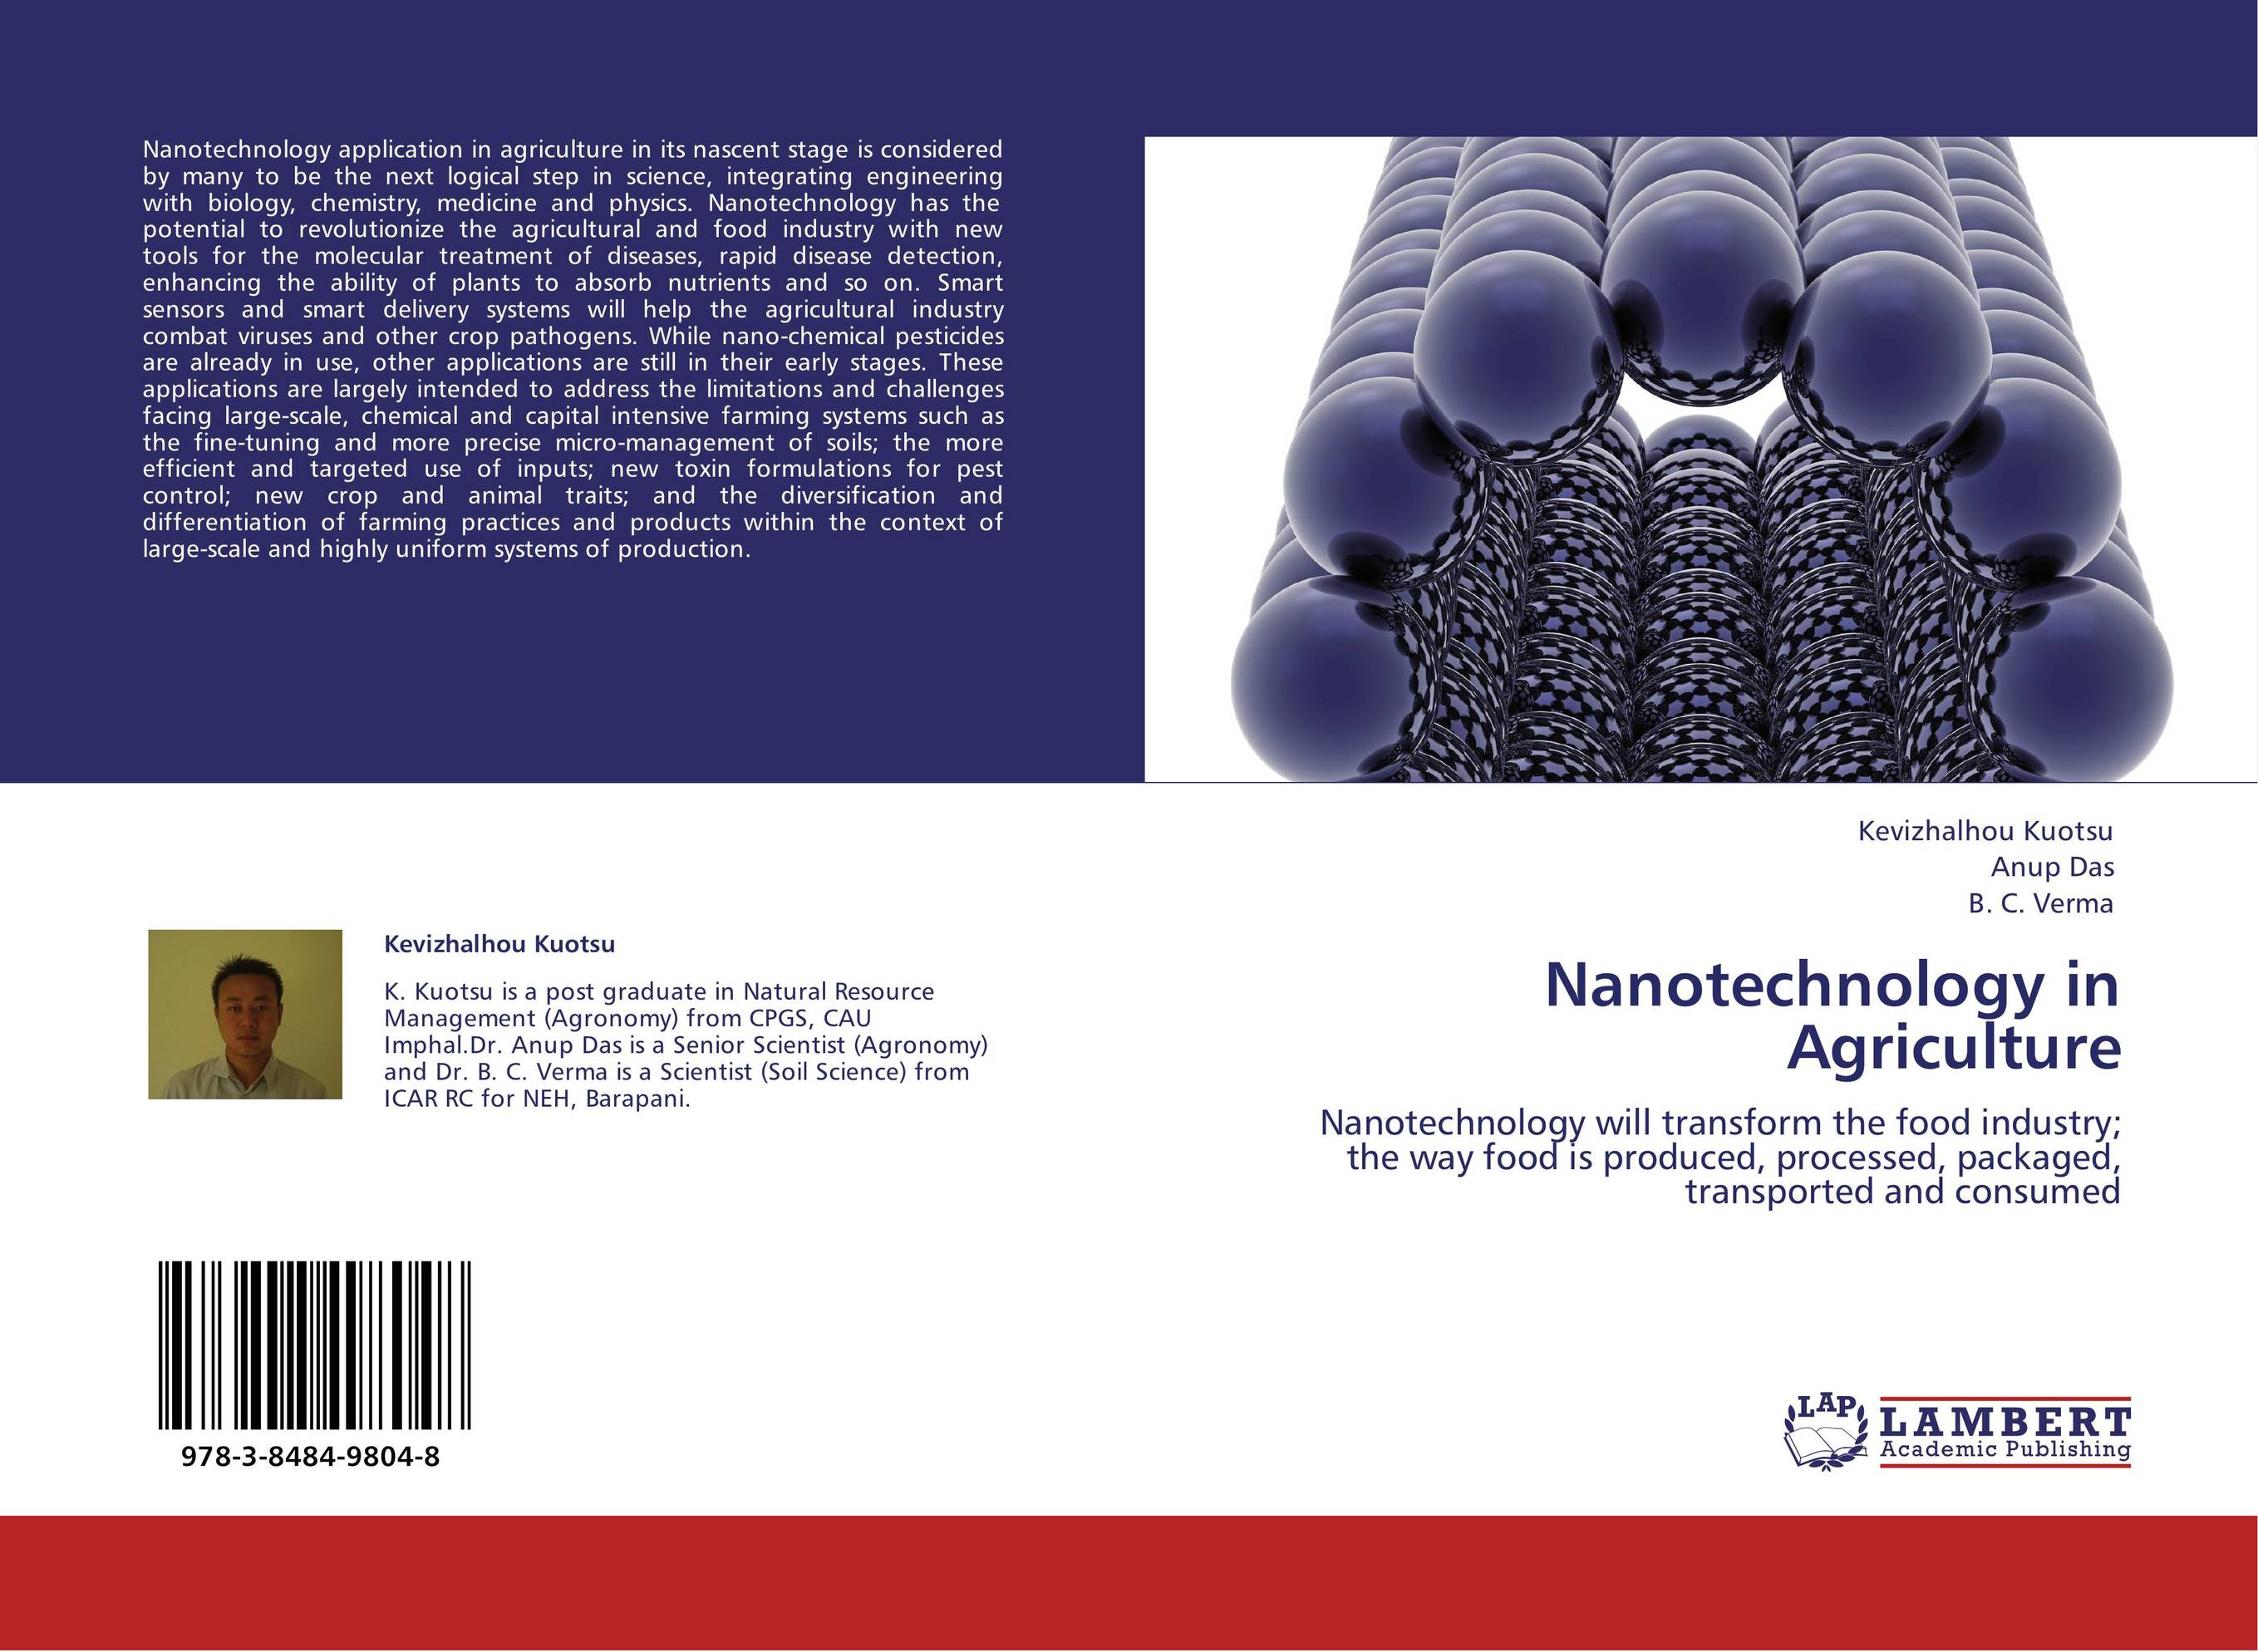 nanotechnology applications Nanotechnology also has applications in the food sector many vitamins and their precursors, such as carotinoids, are insoluble in water however, when skillfully produced and formulated as nanoparticles.